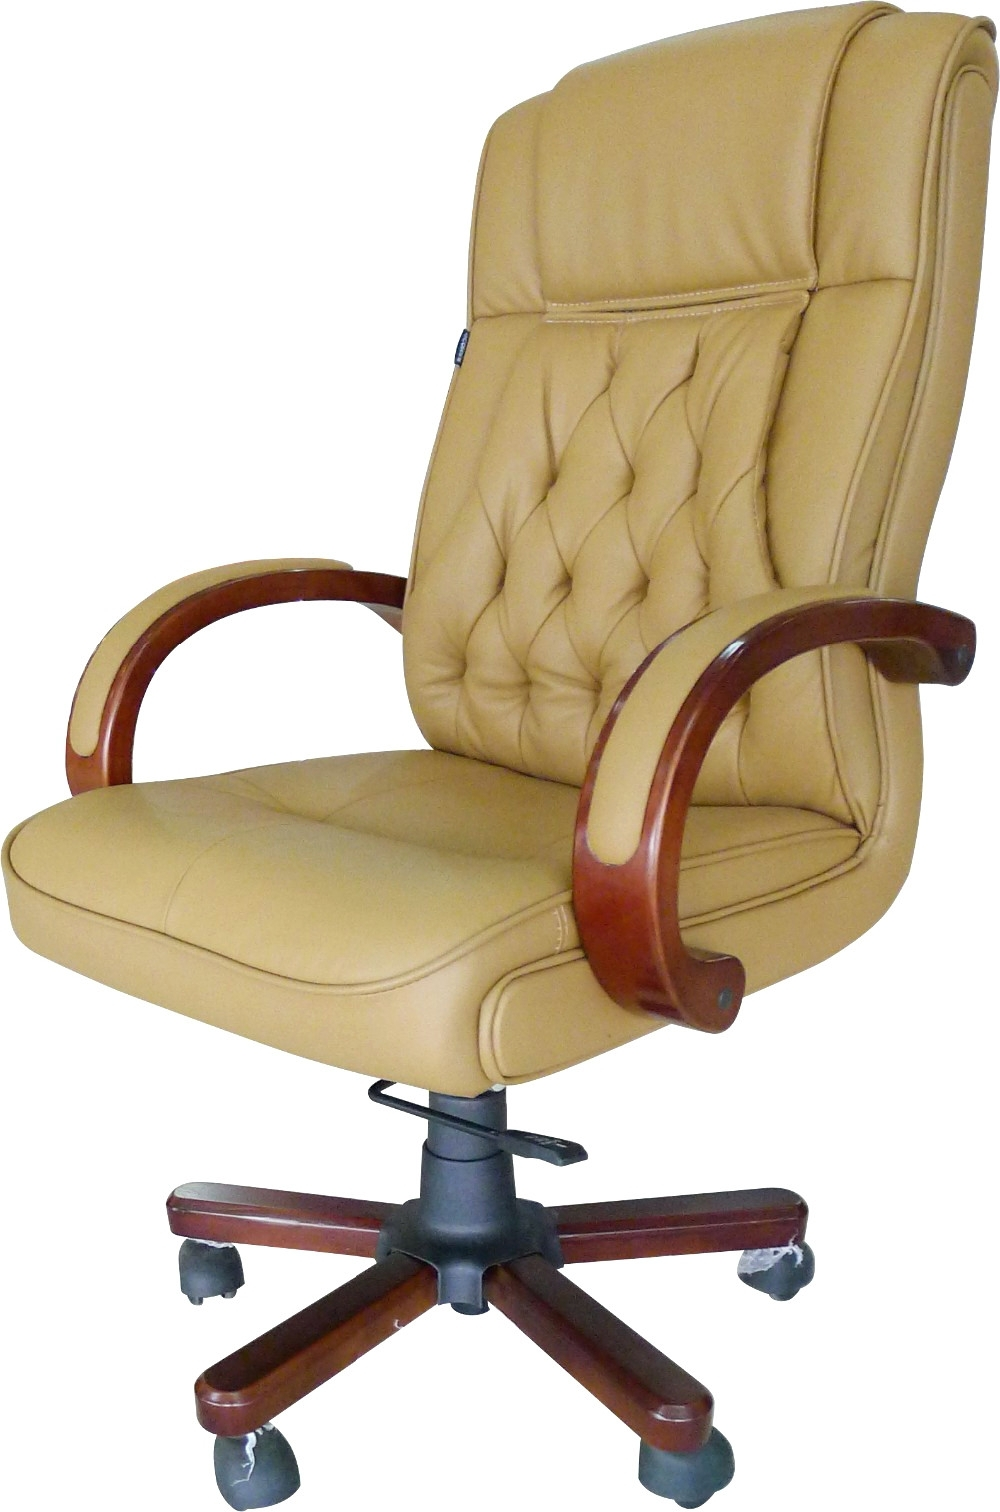 Well Liked Chaise Lounge Computer Chair • Lounge Chairs Ideas With Chaise Lounge Computer Chairs (View 15 of 15)